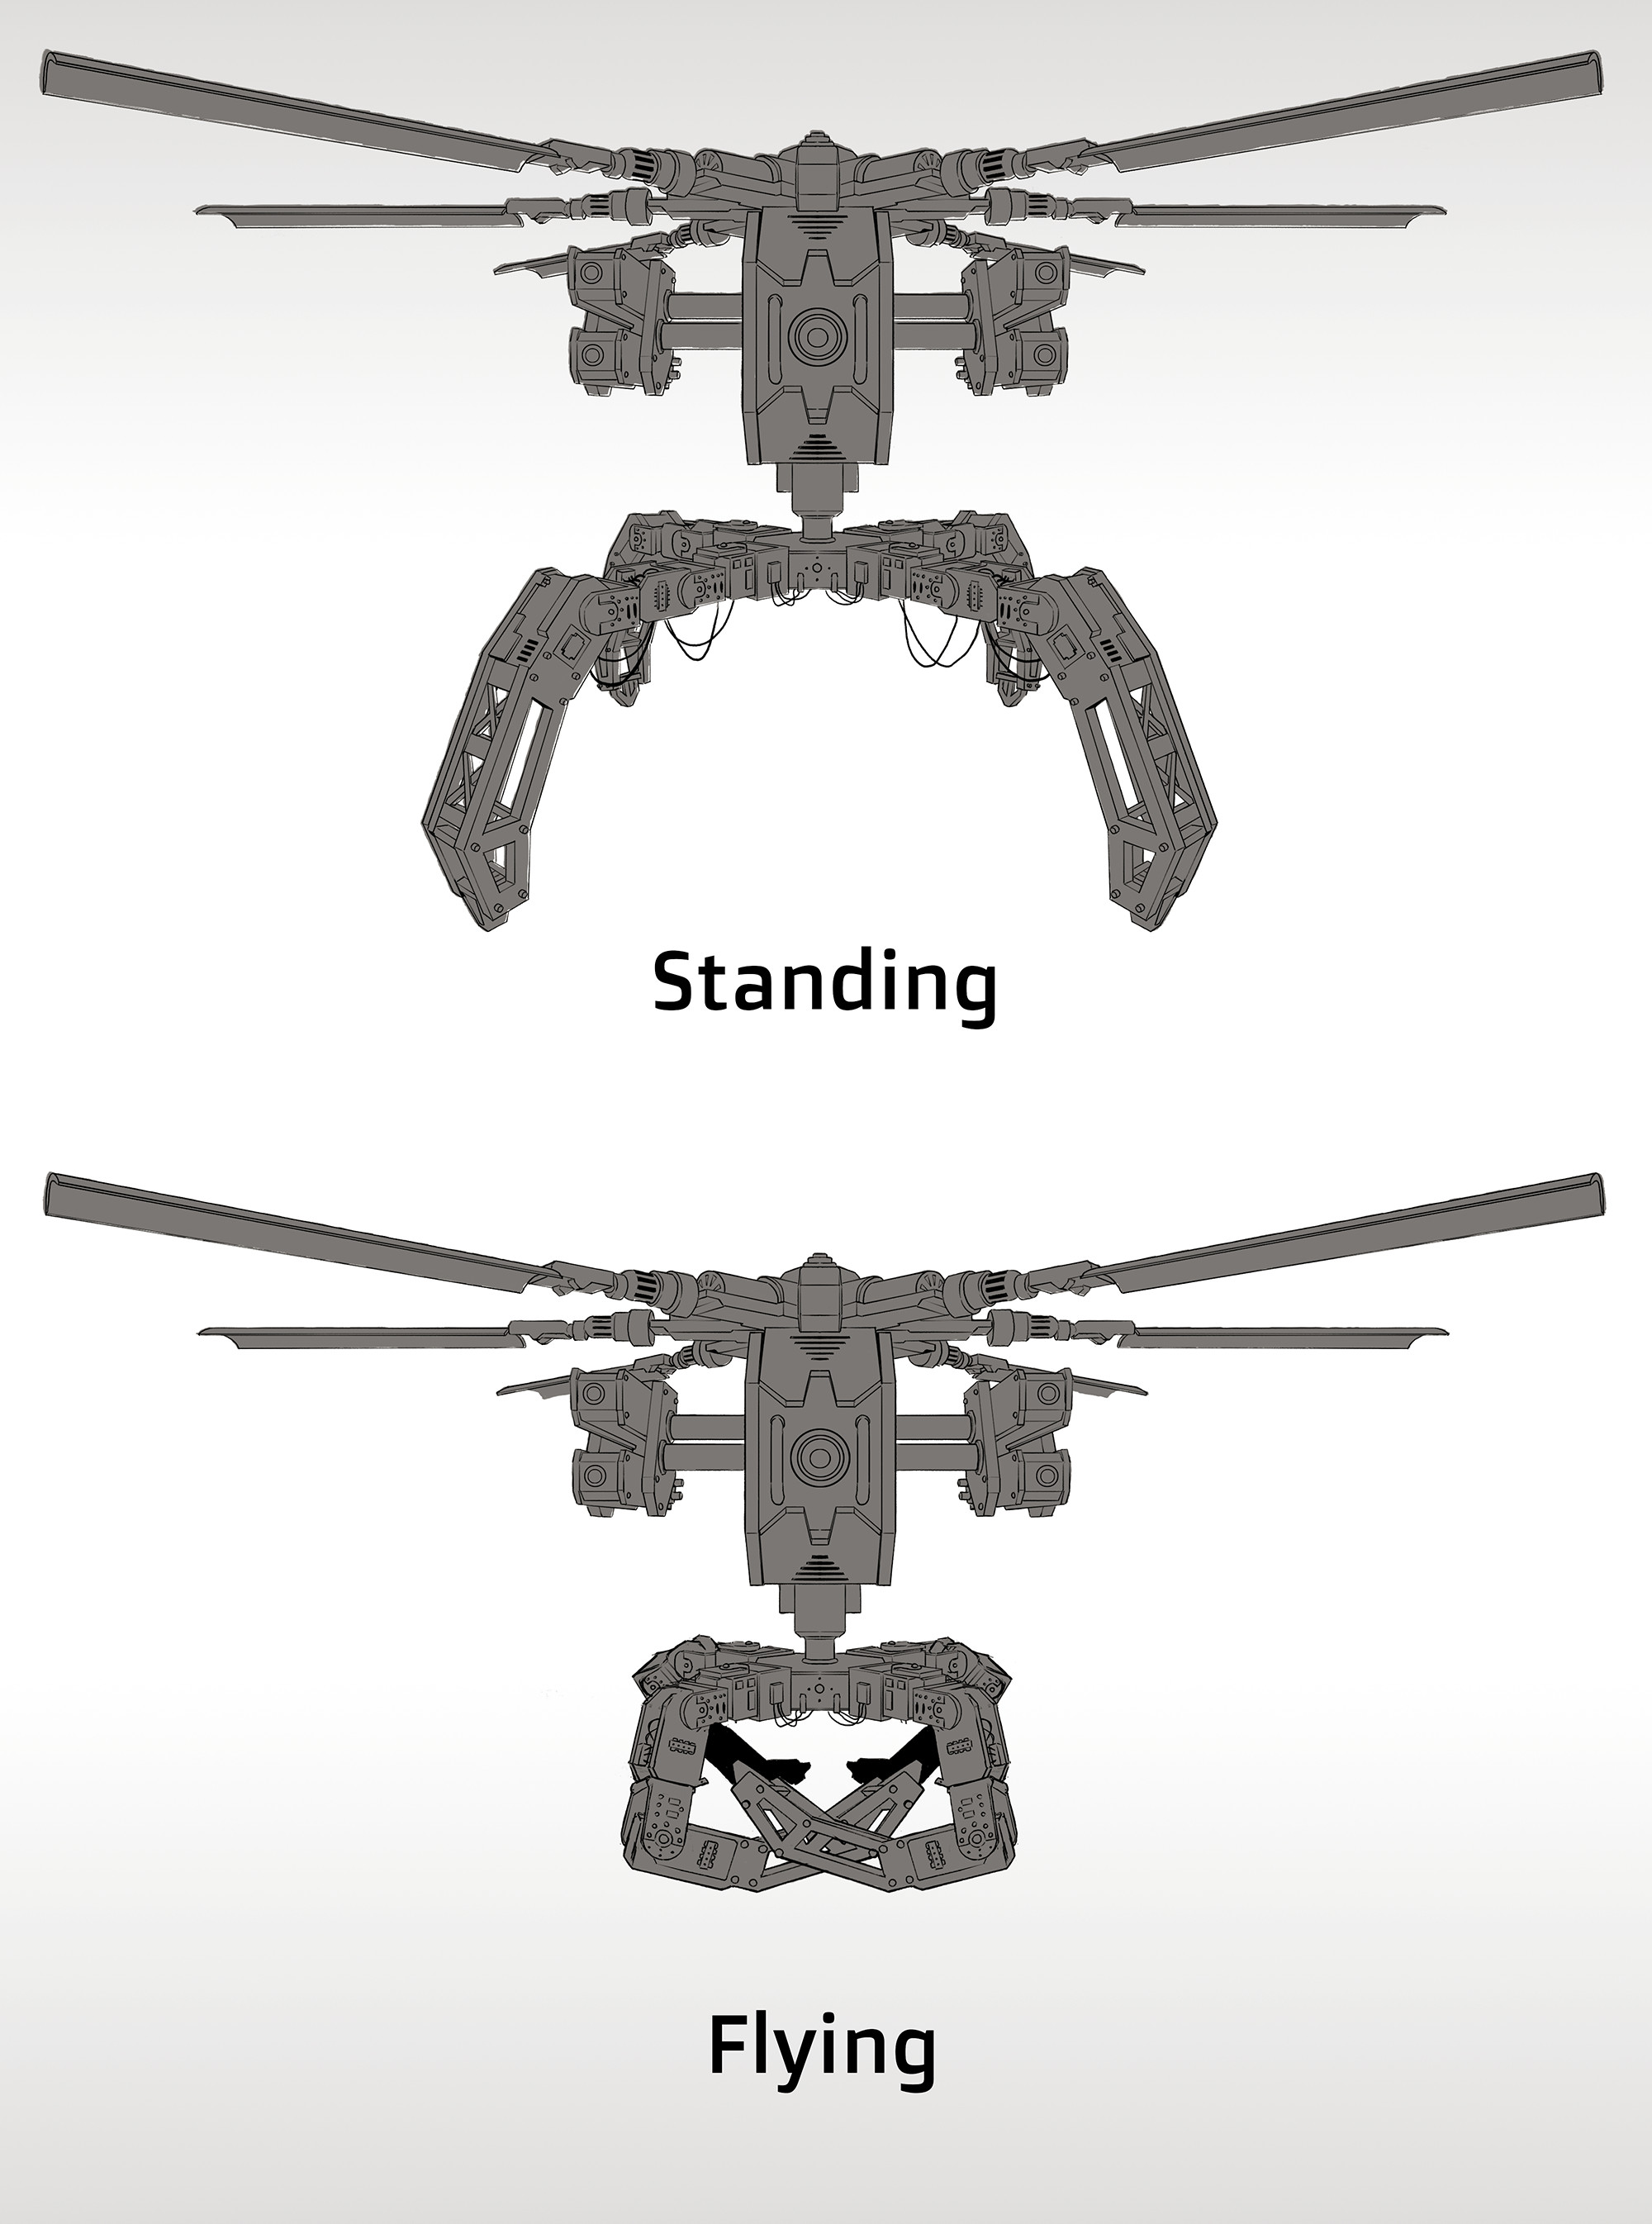 Animation ref of standing vs flying.